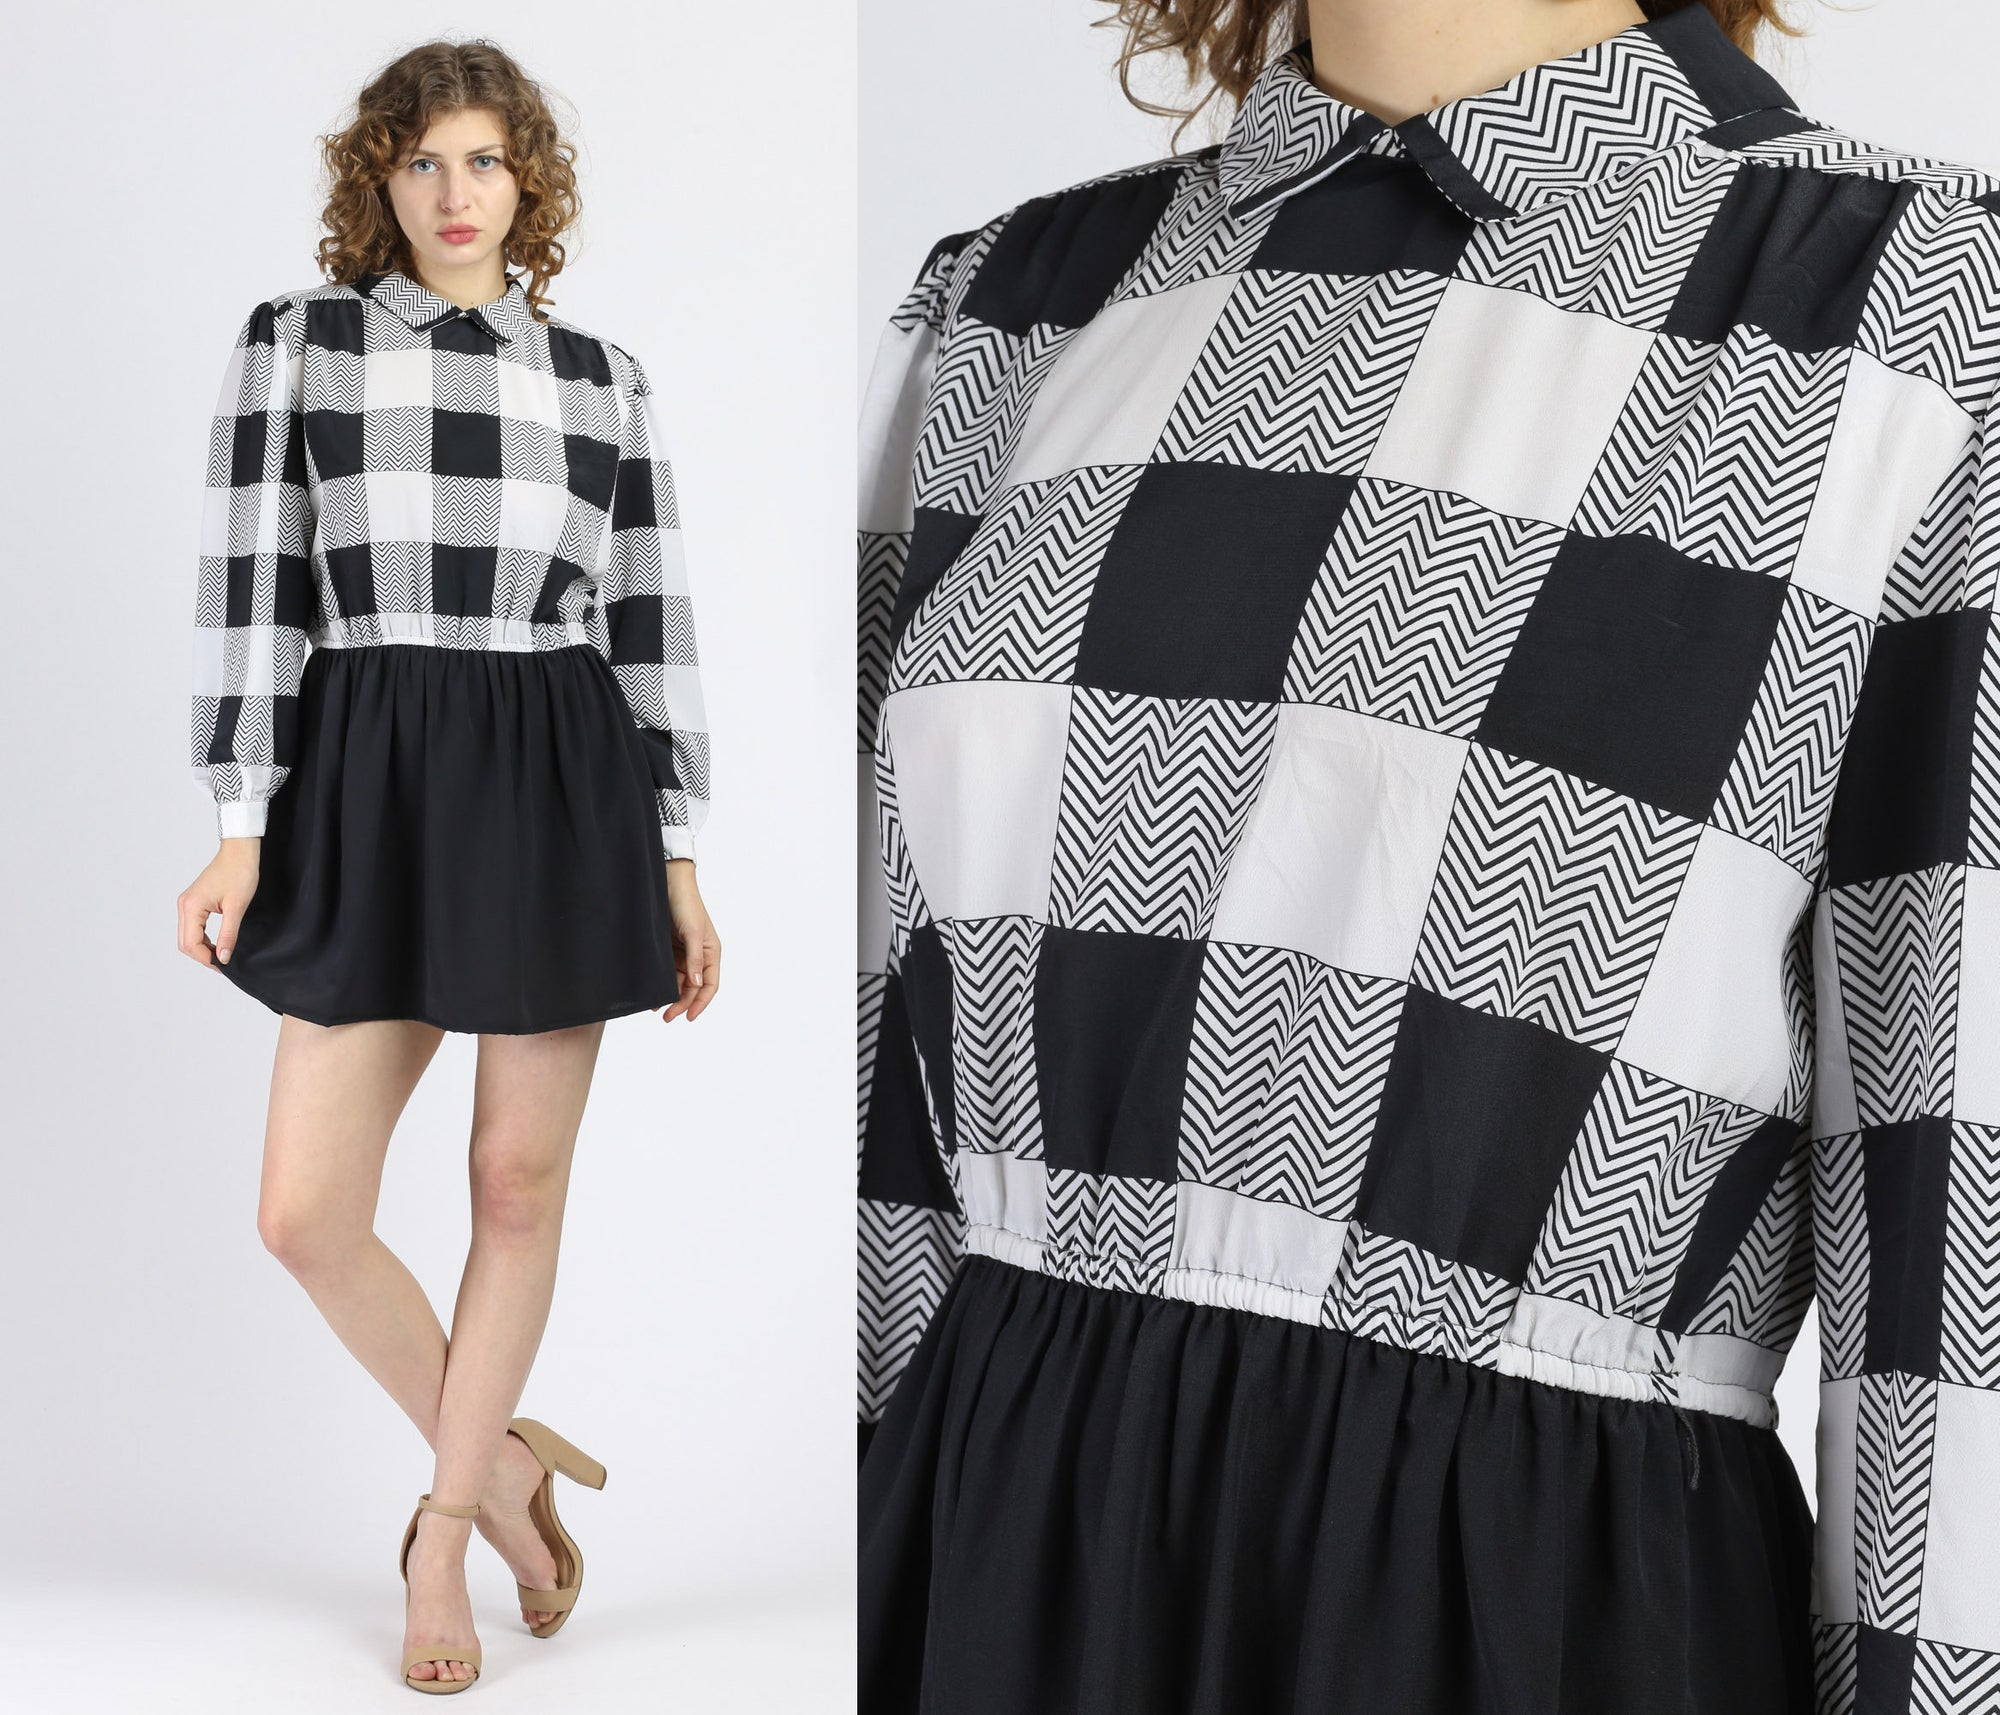 80s Black & White Gingham Mini Dress - Medium